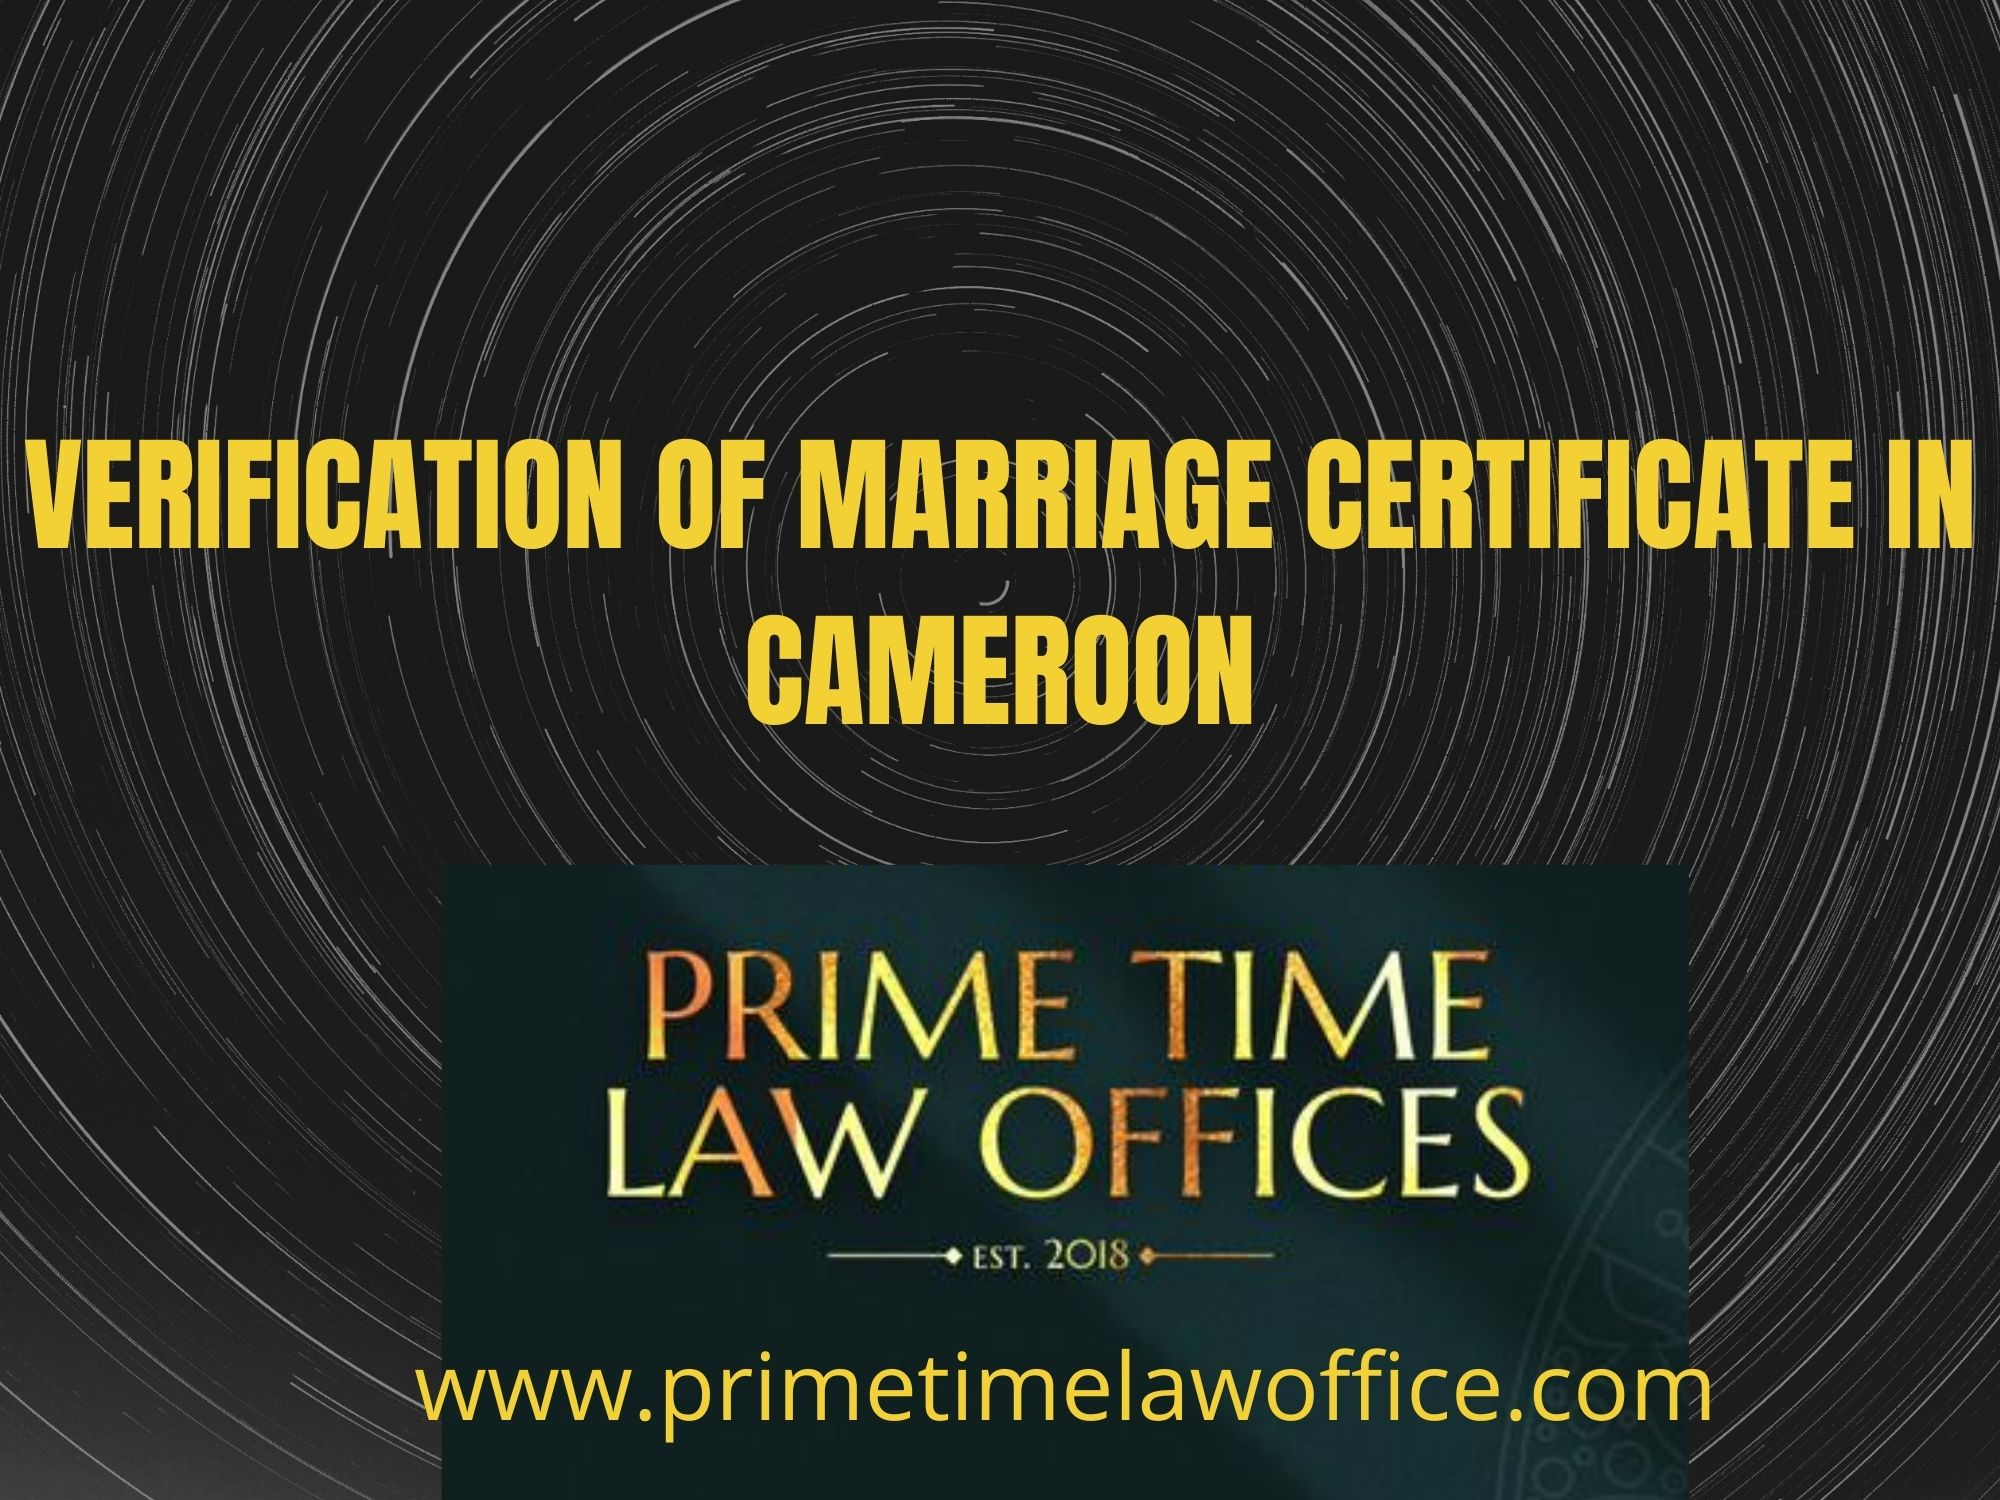 VERIFICATION OF A MARRIAGE CERTIFICATE IN CAMEROON